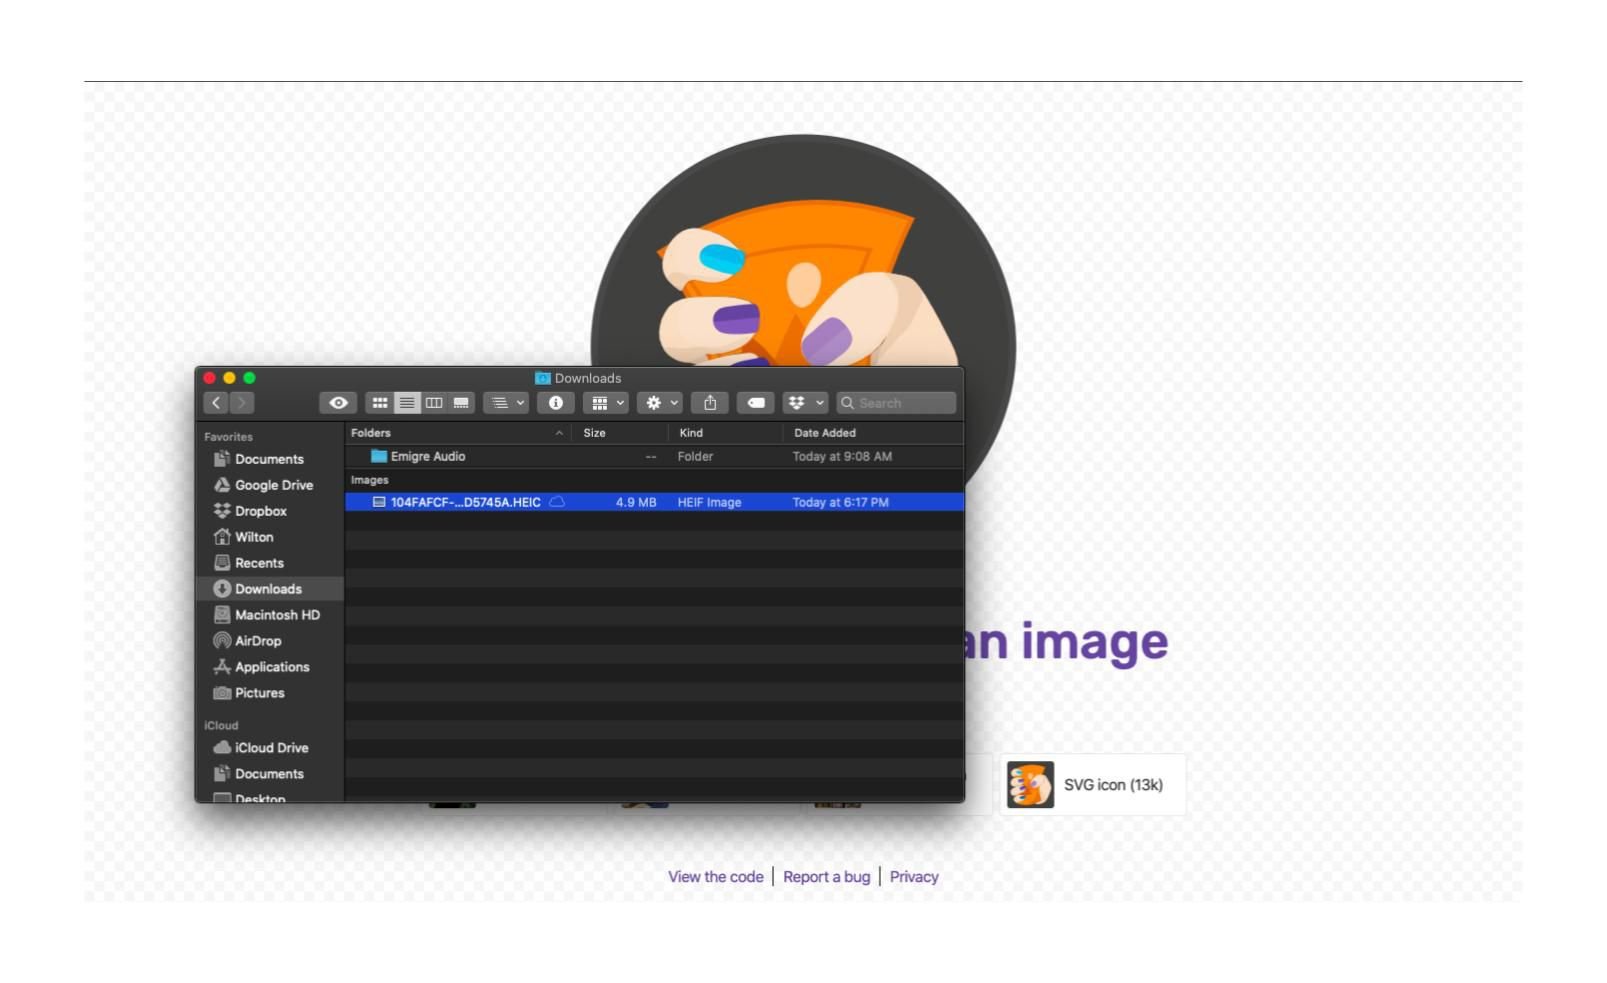 Squoosh website with the macOS file system overlaid.